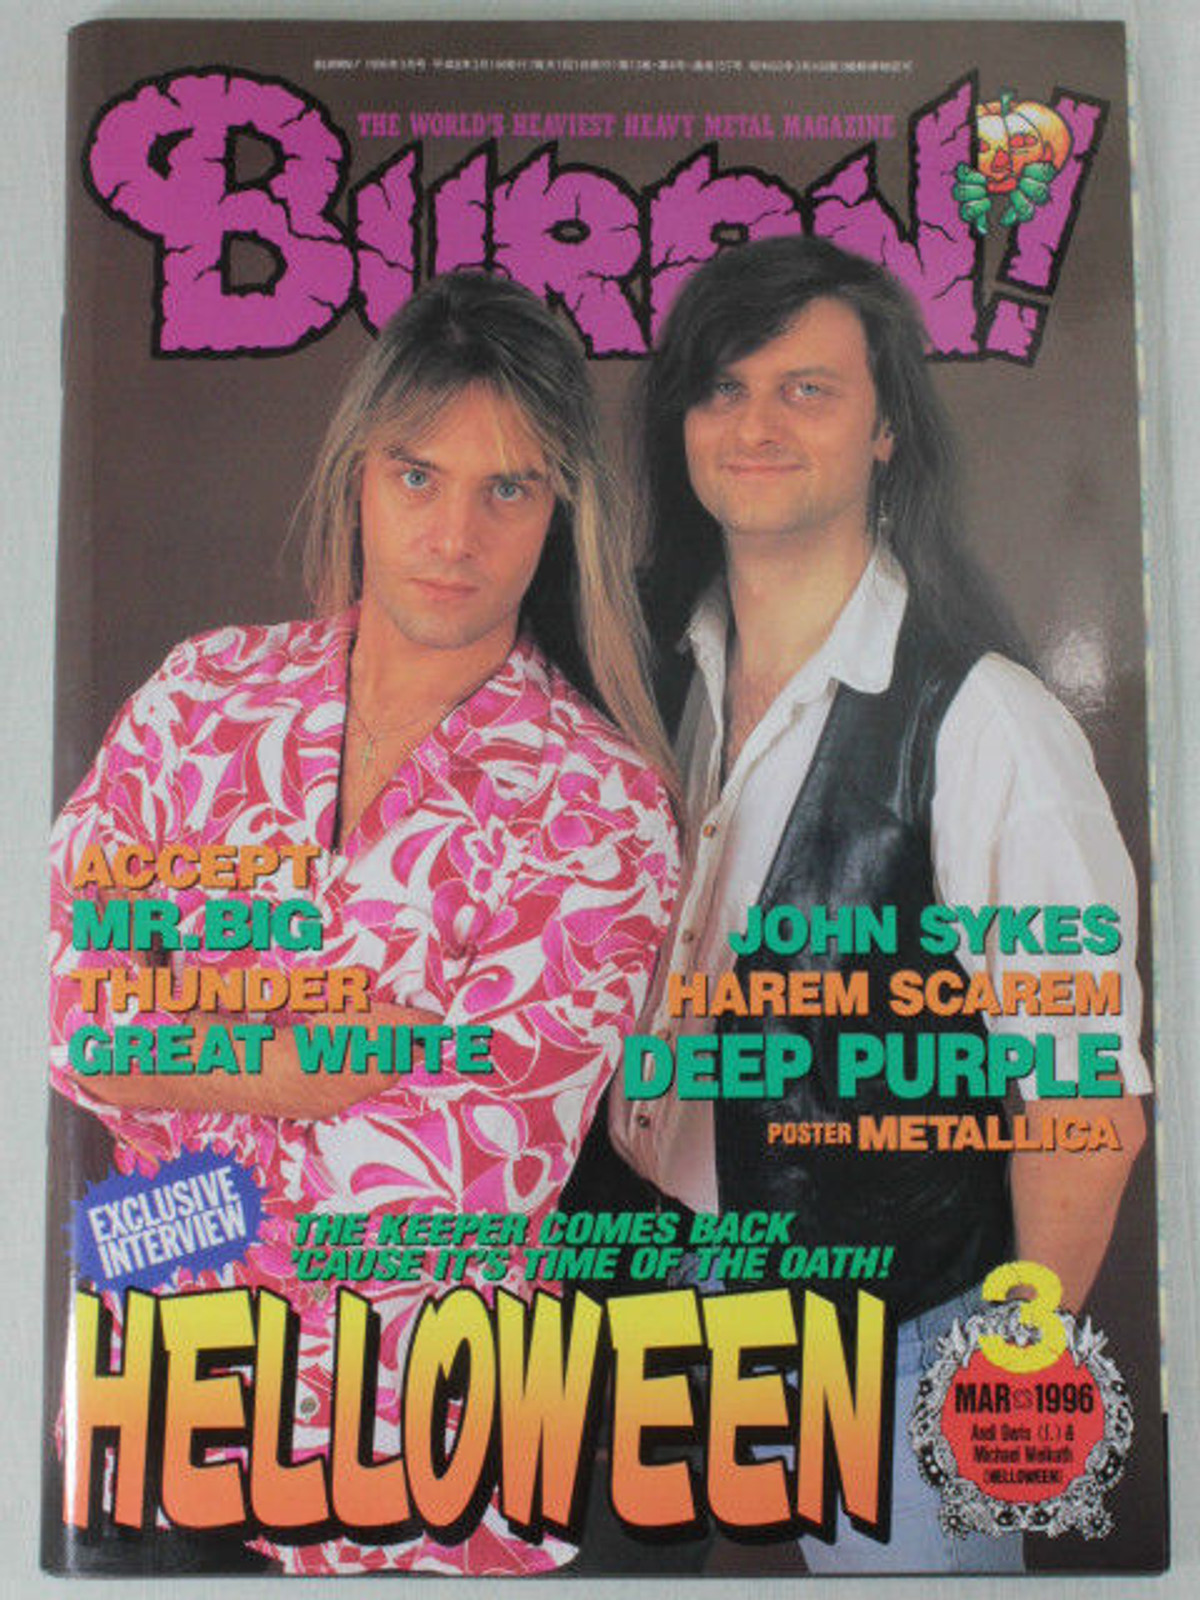 1996/03 BURRN! Japan Rock Magazine HELLOWEEN/ACCEPT/DEEP PURPLE/THUNDER/MR.BIG